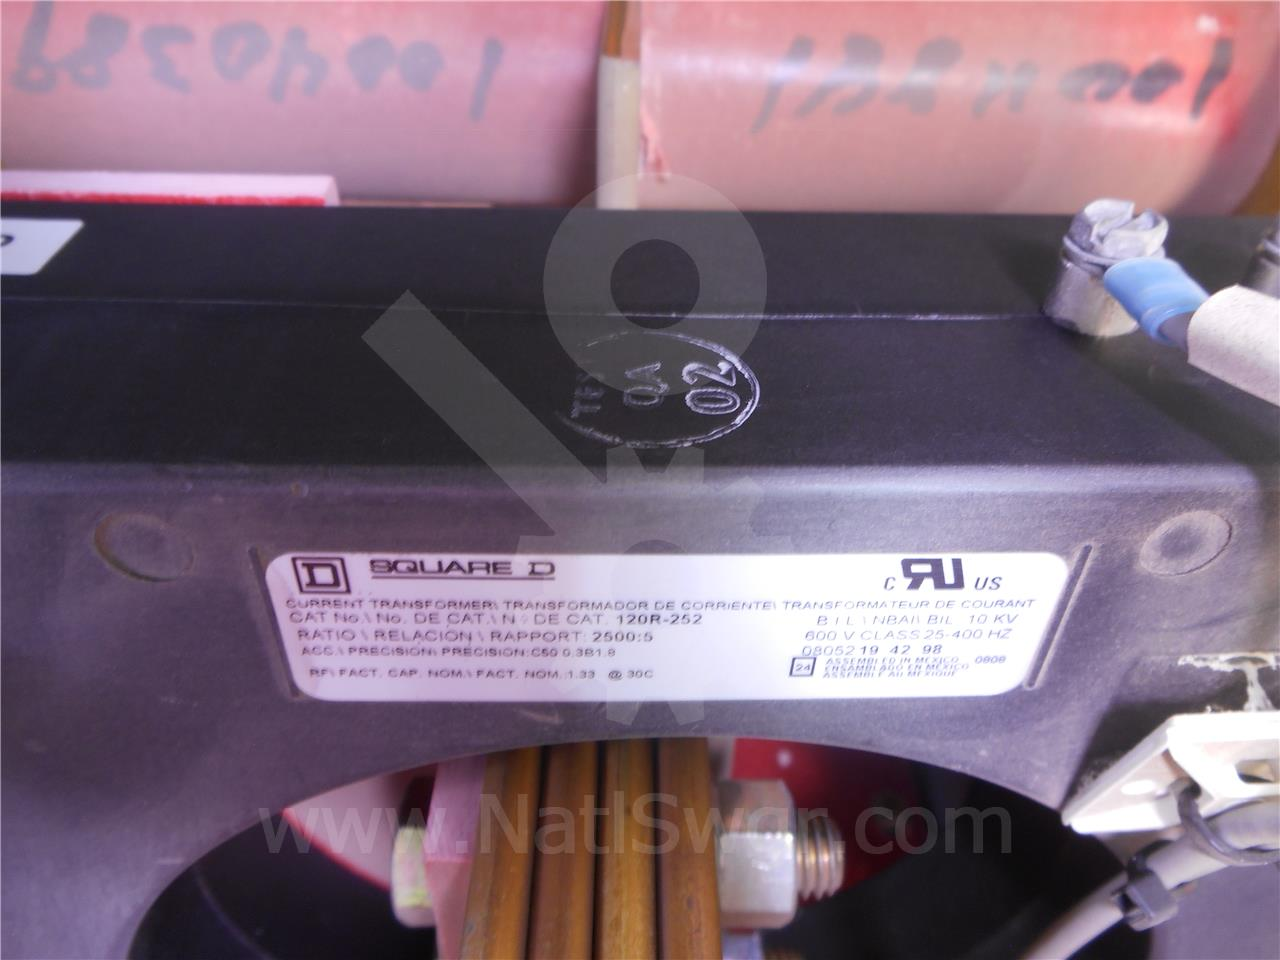 120R-252 Square D CURRENT TRANSFORMER 2500:5 C100